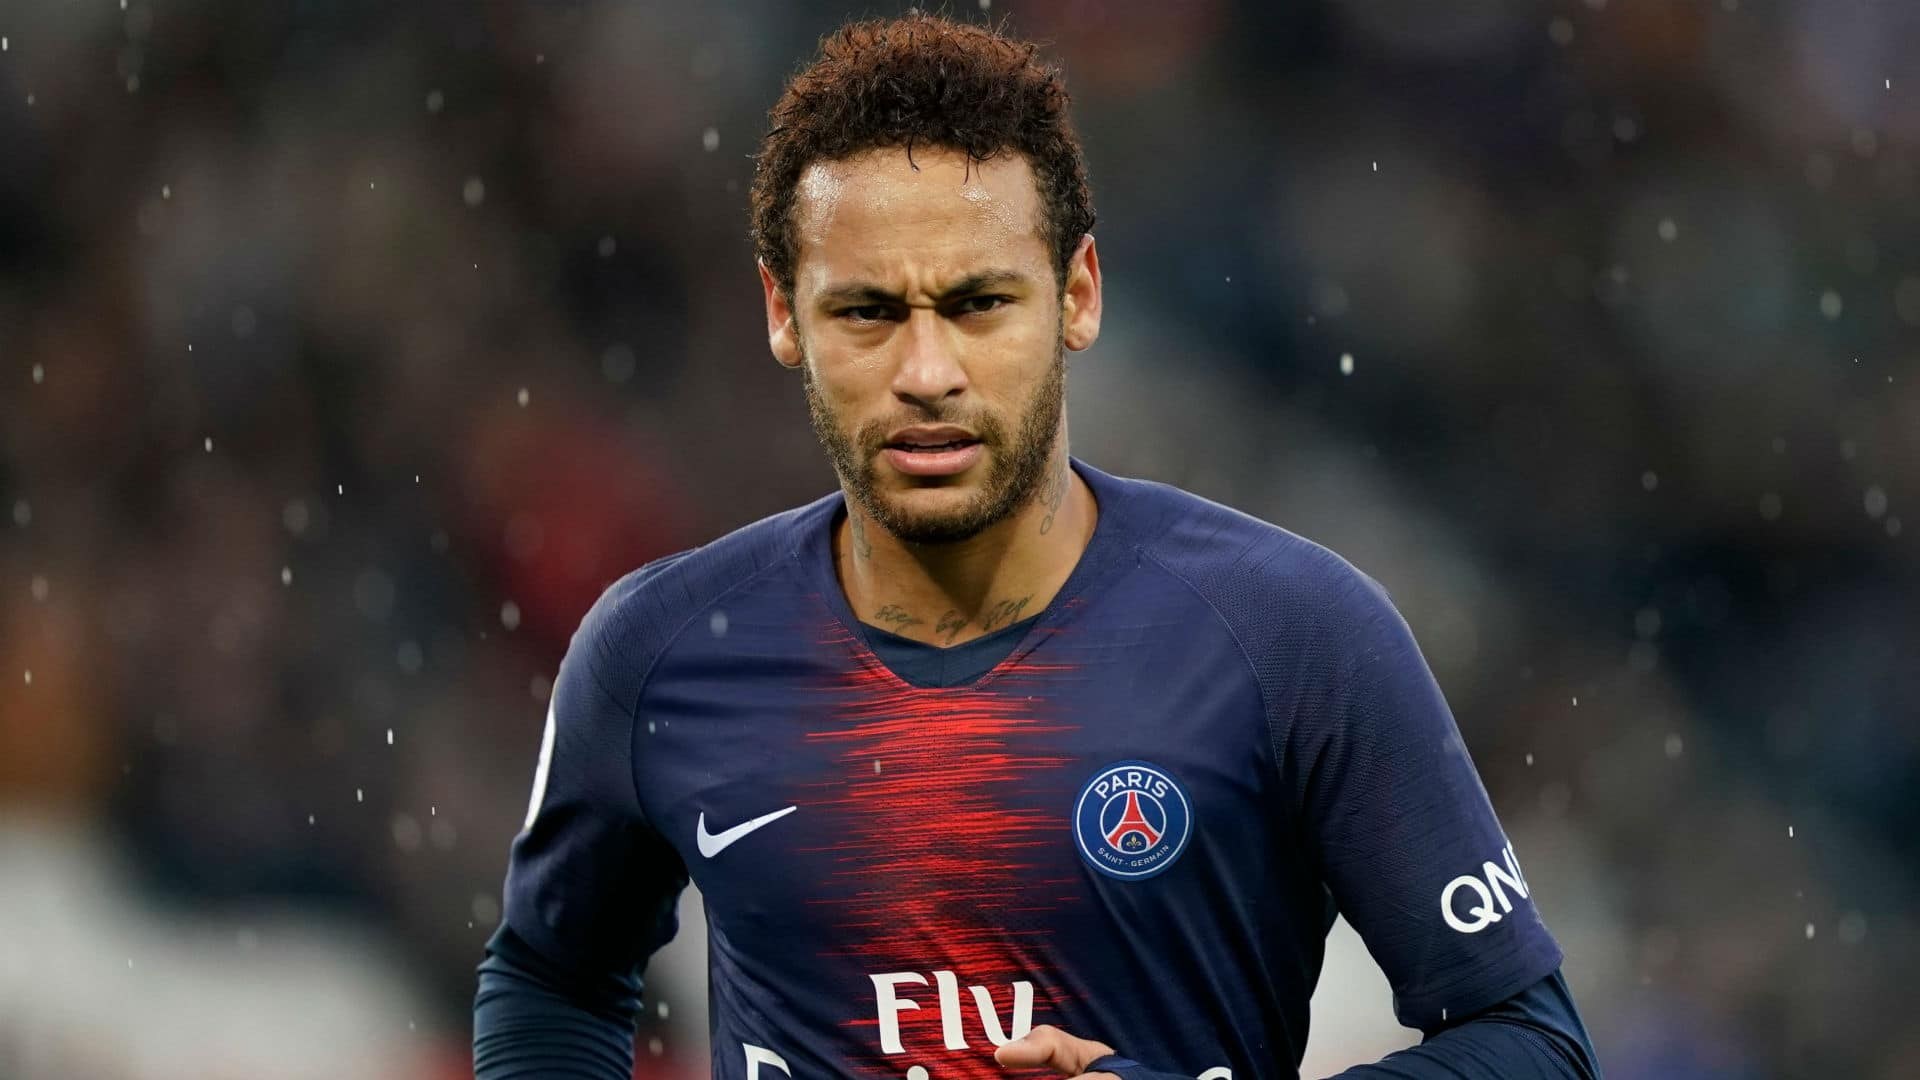 Neymar suspended for three matches after fan altercation